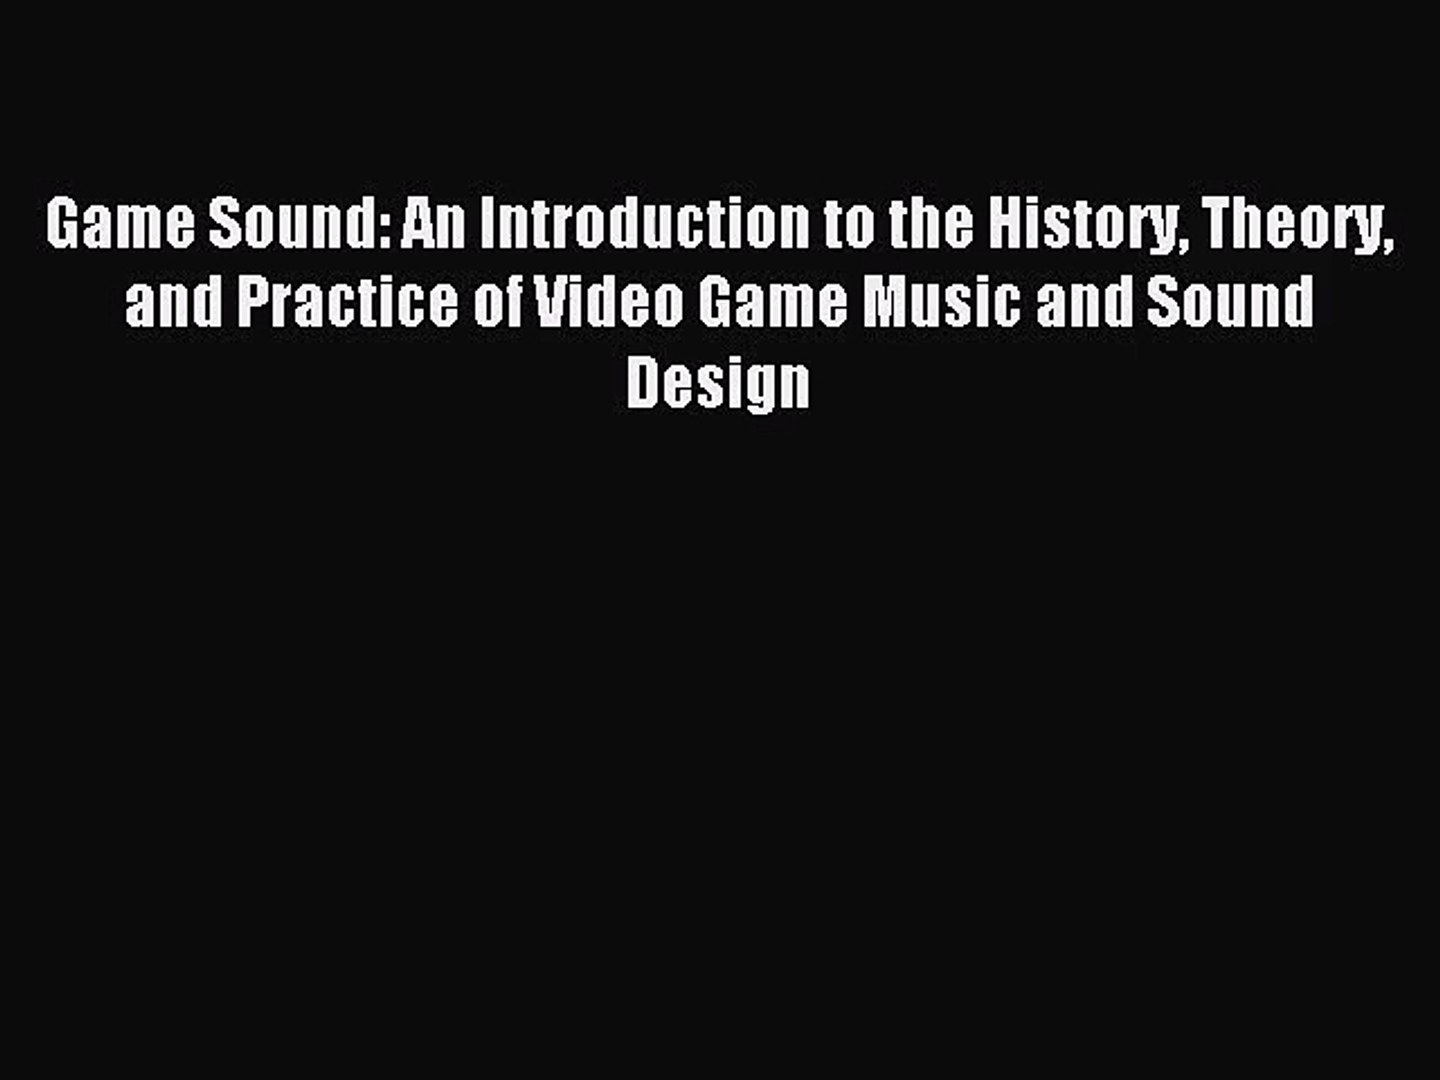 Game Sound: An Introduction to the History Theory and Practice of Video Game Music and Sound